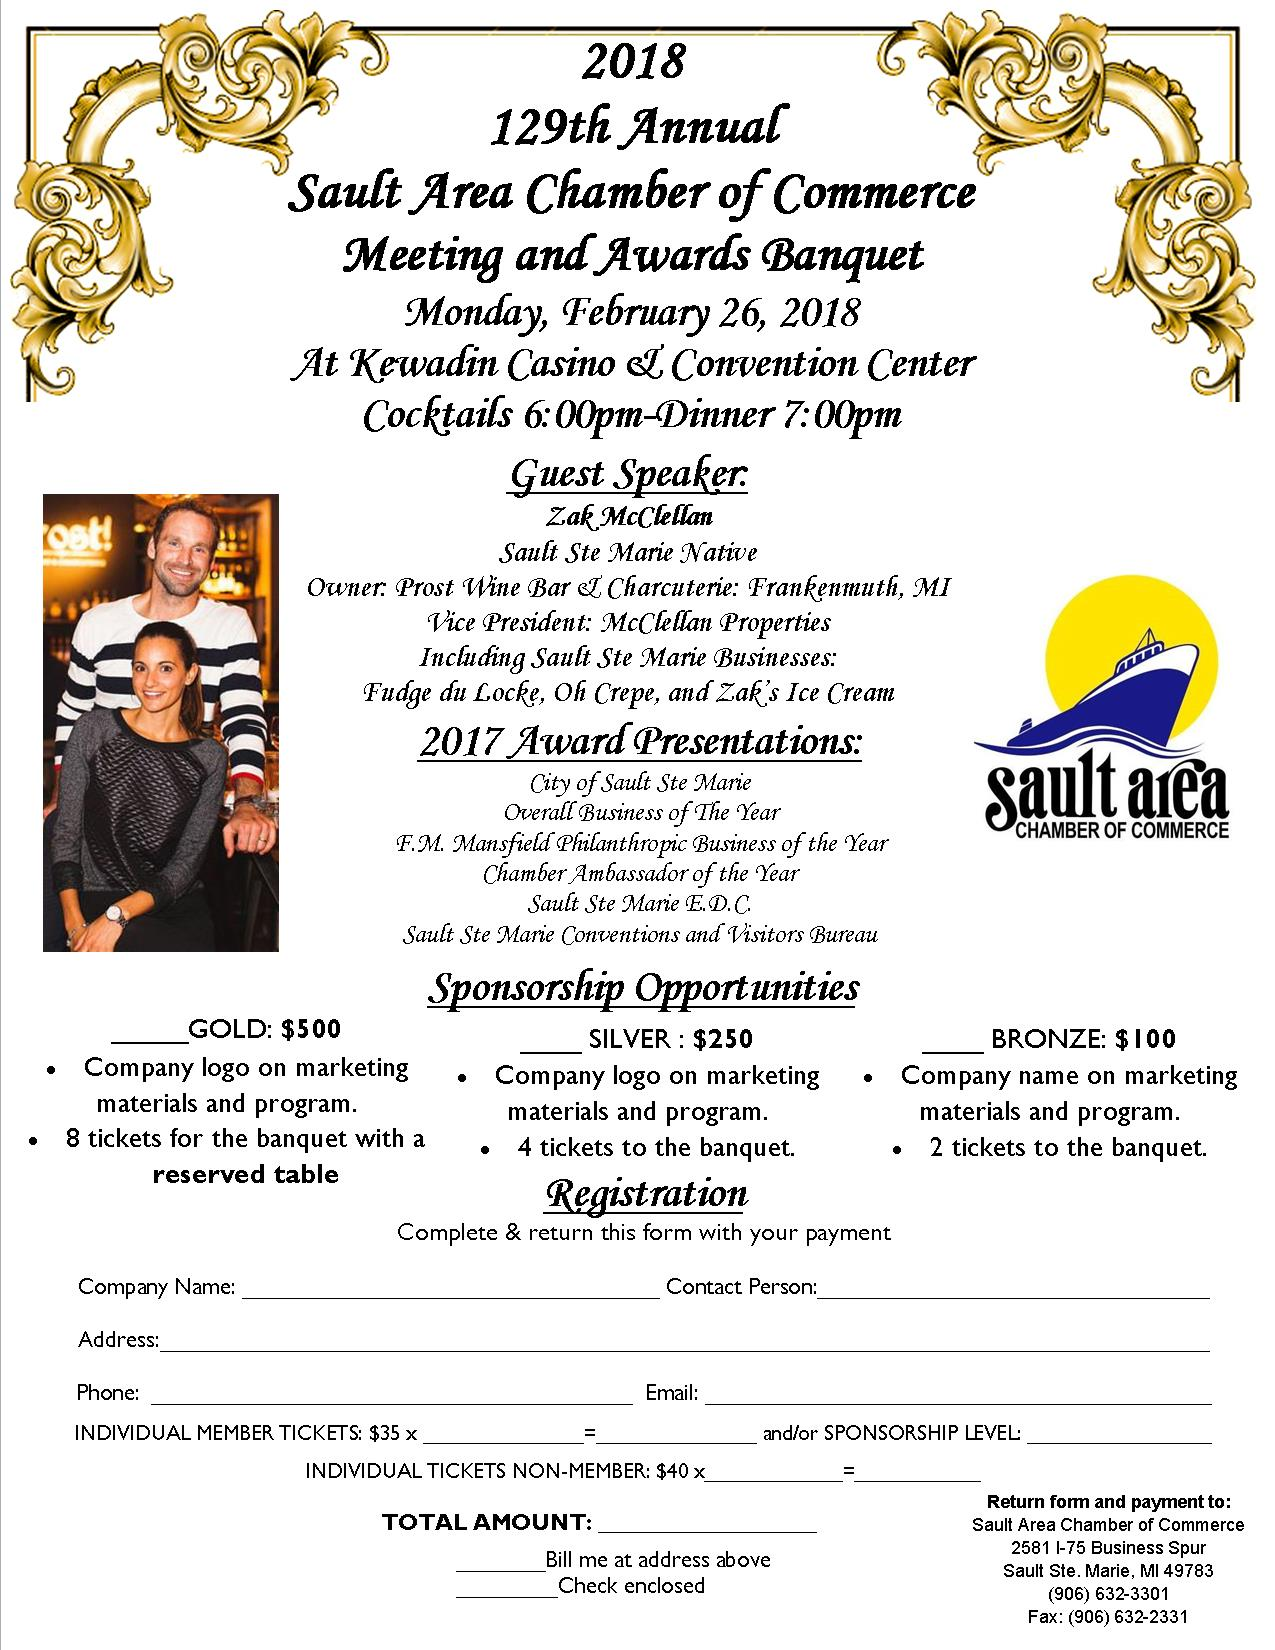 banquet flyer 2018 sault ste marie chamber of commerce